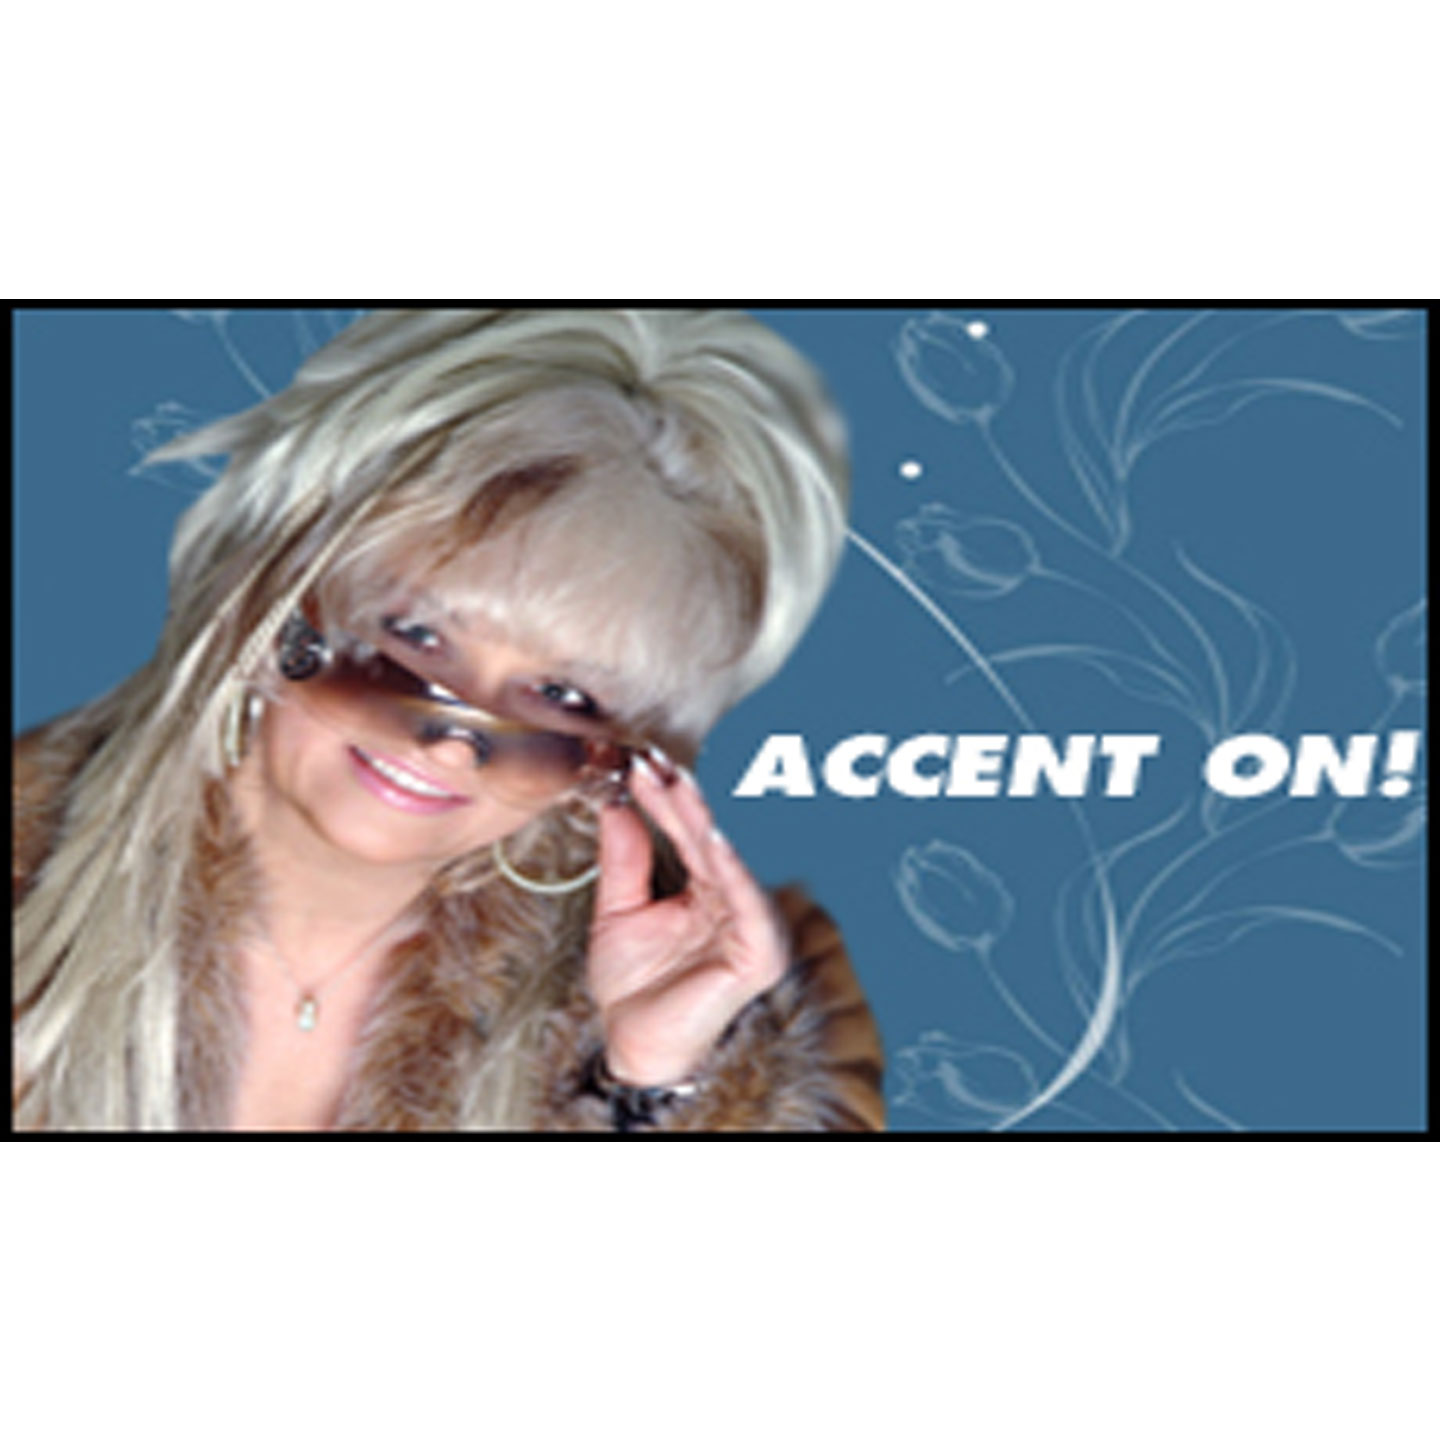 Accent On!